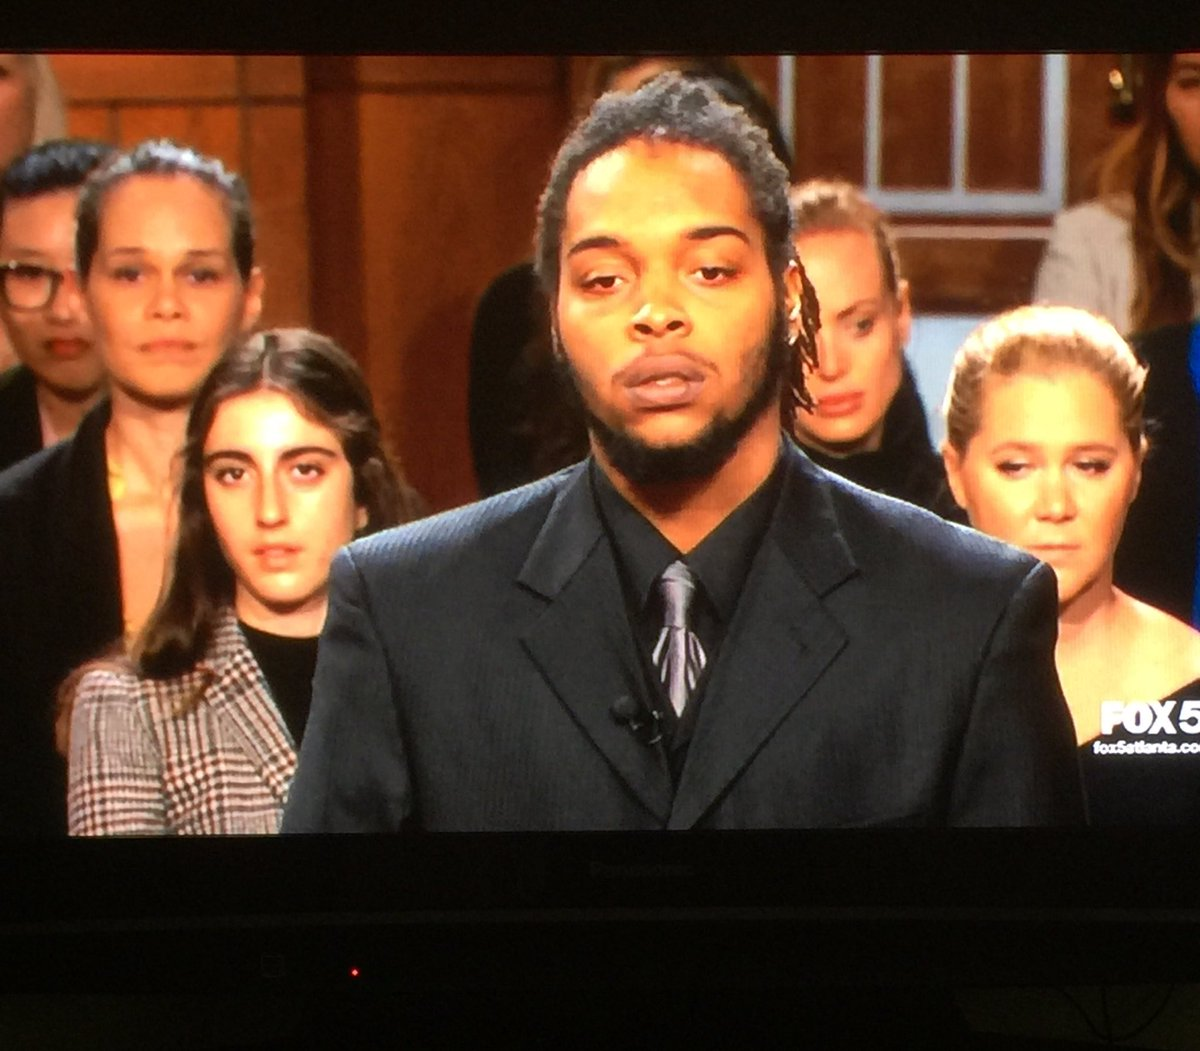 'Judge Judy' Fans Confused After Spotting Amy Schumer in the Audience